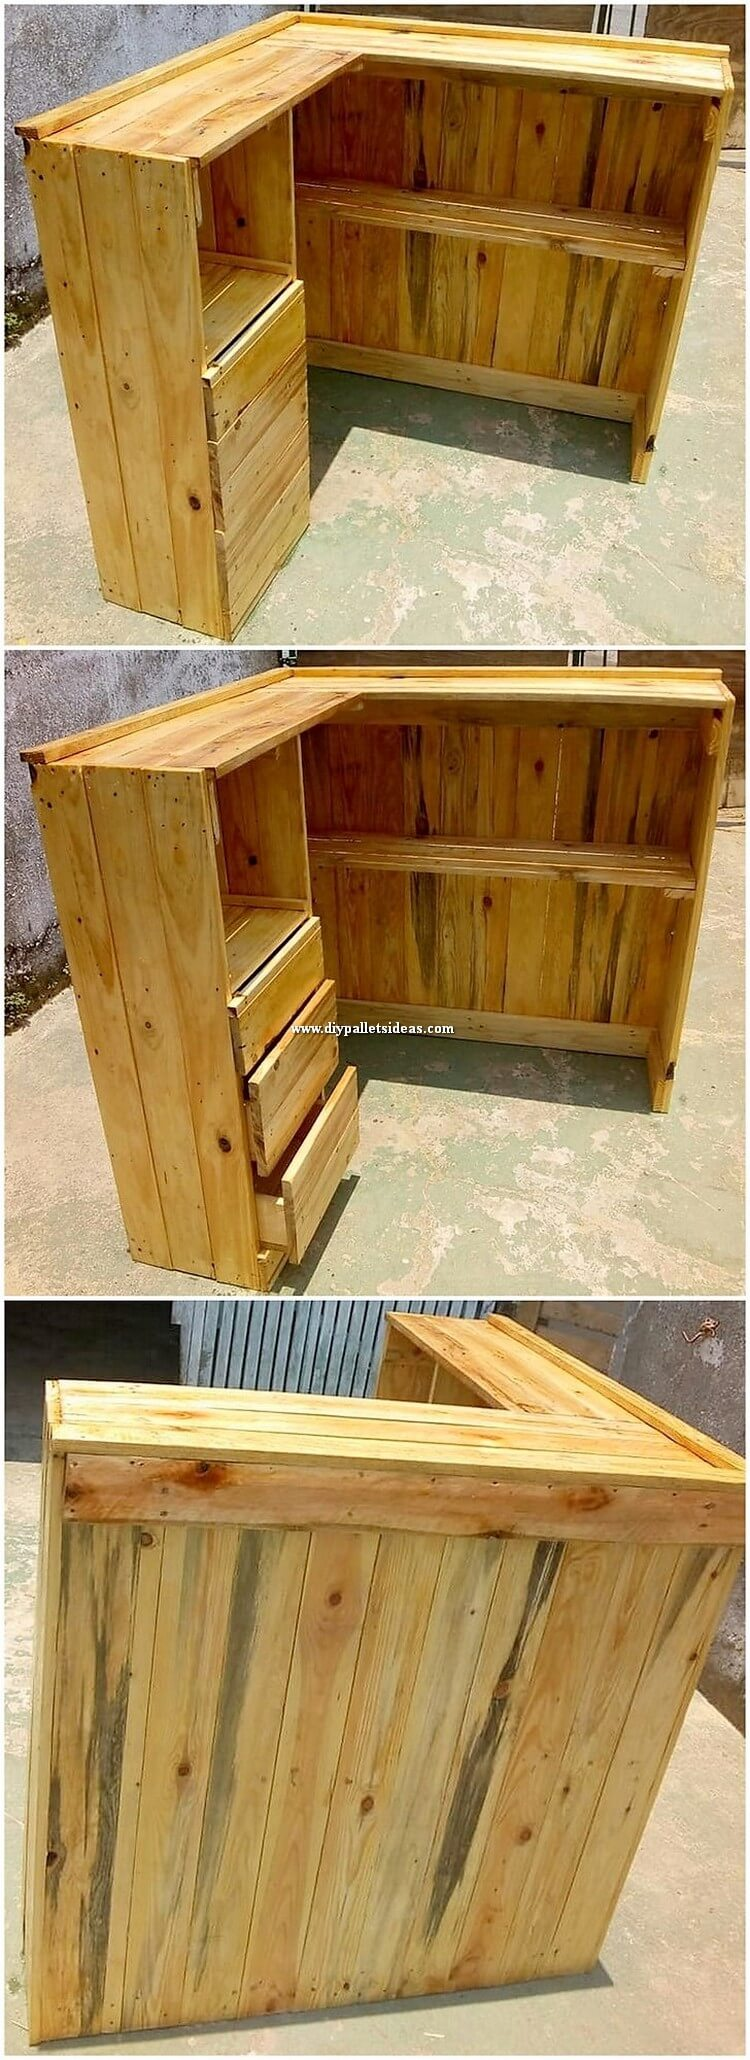 Pallet Counter Table with Drawers